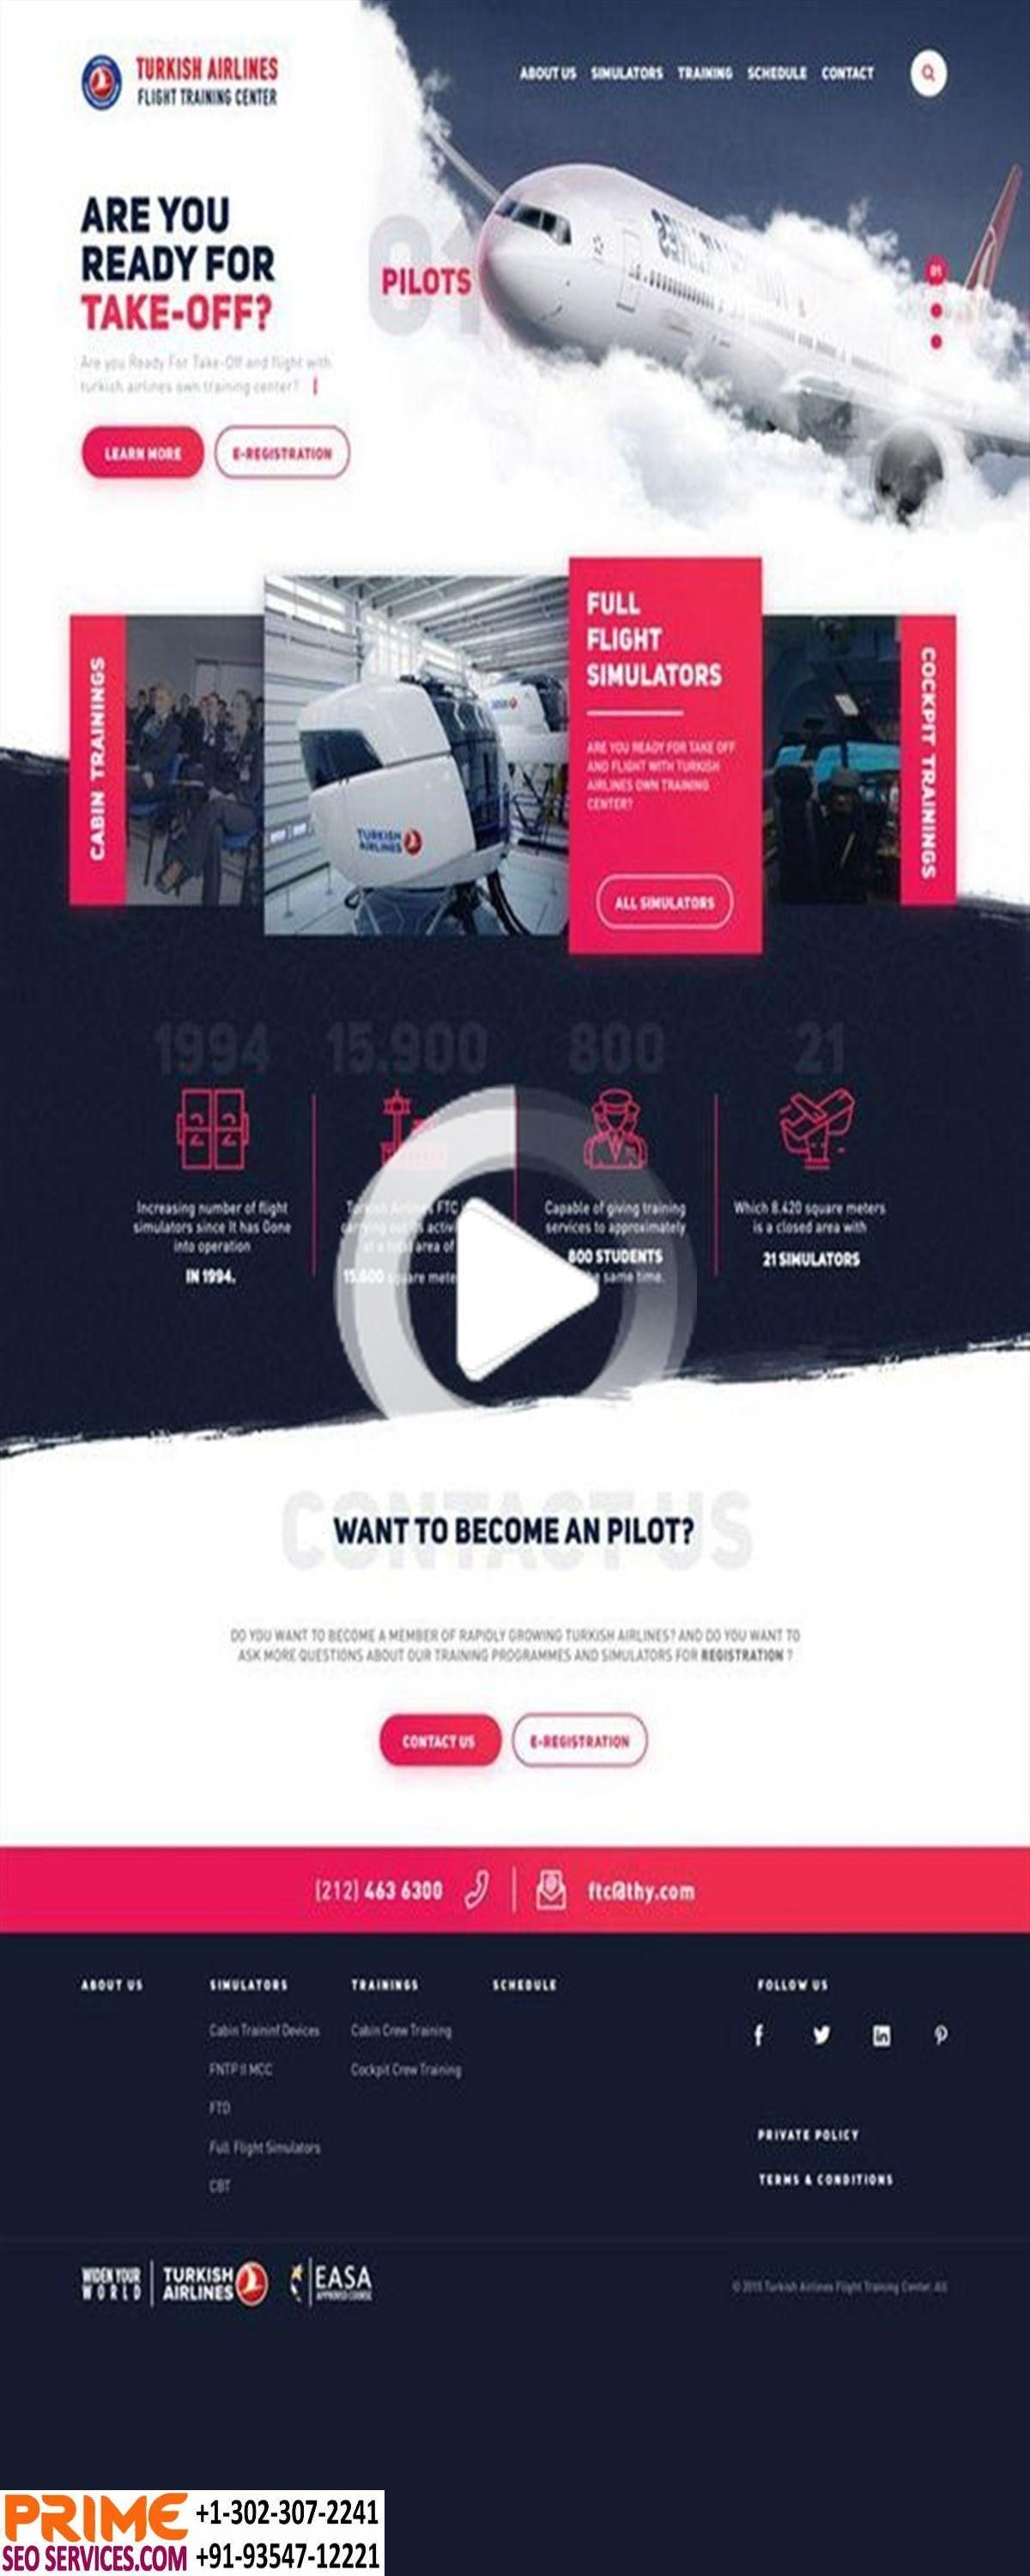 Gurgaon Web Design Company Offering Professional Custom Amp Affordable Small Business Web In 2020 Food Website Design Web Design Websites Website Design Inspiration